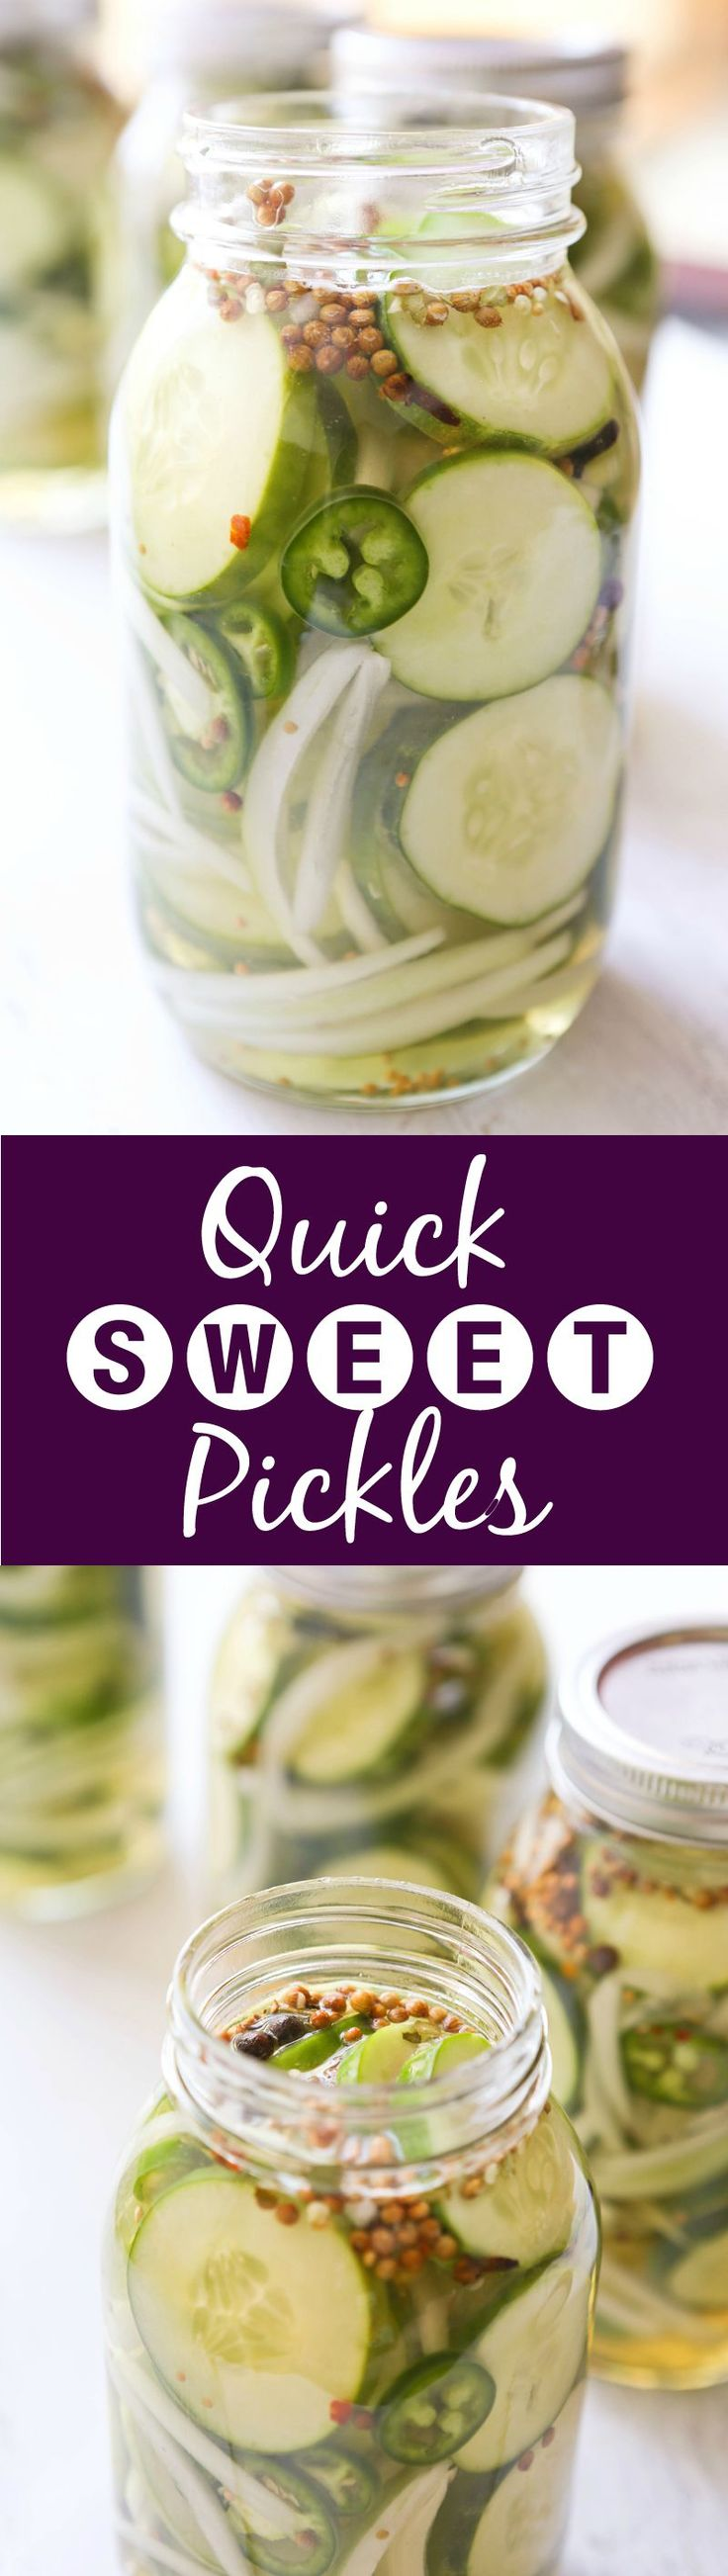 Quick Sweet Refrigerator Pickles | These pickles are EASY! And soooo delicious!